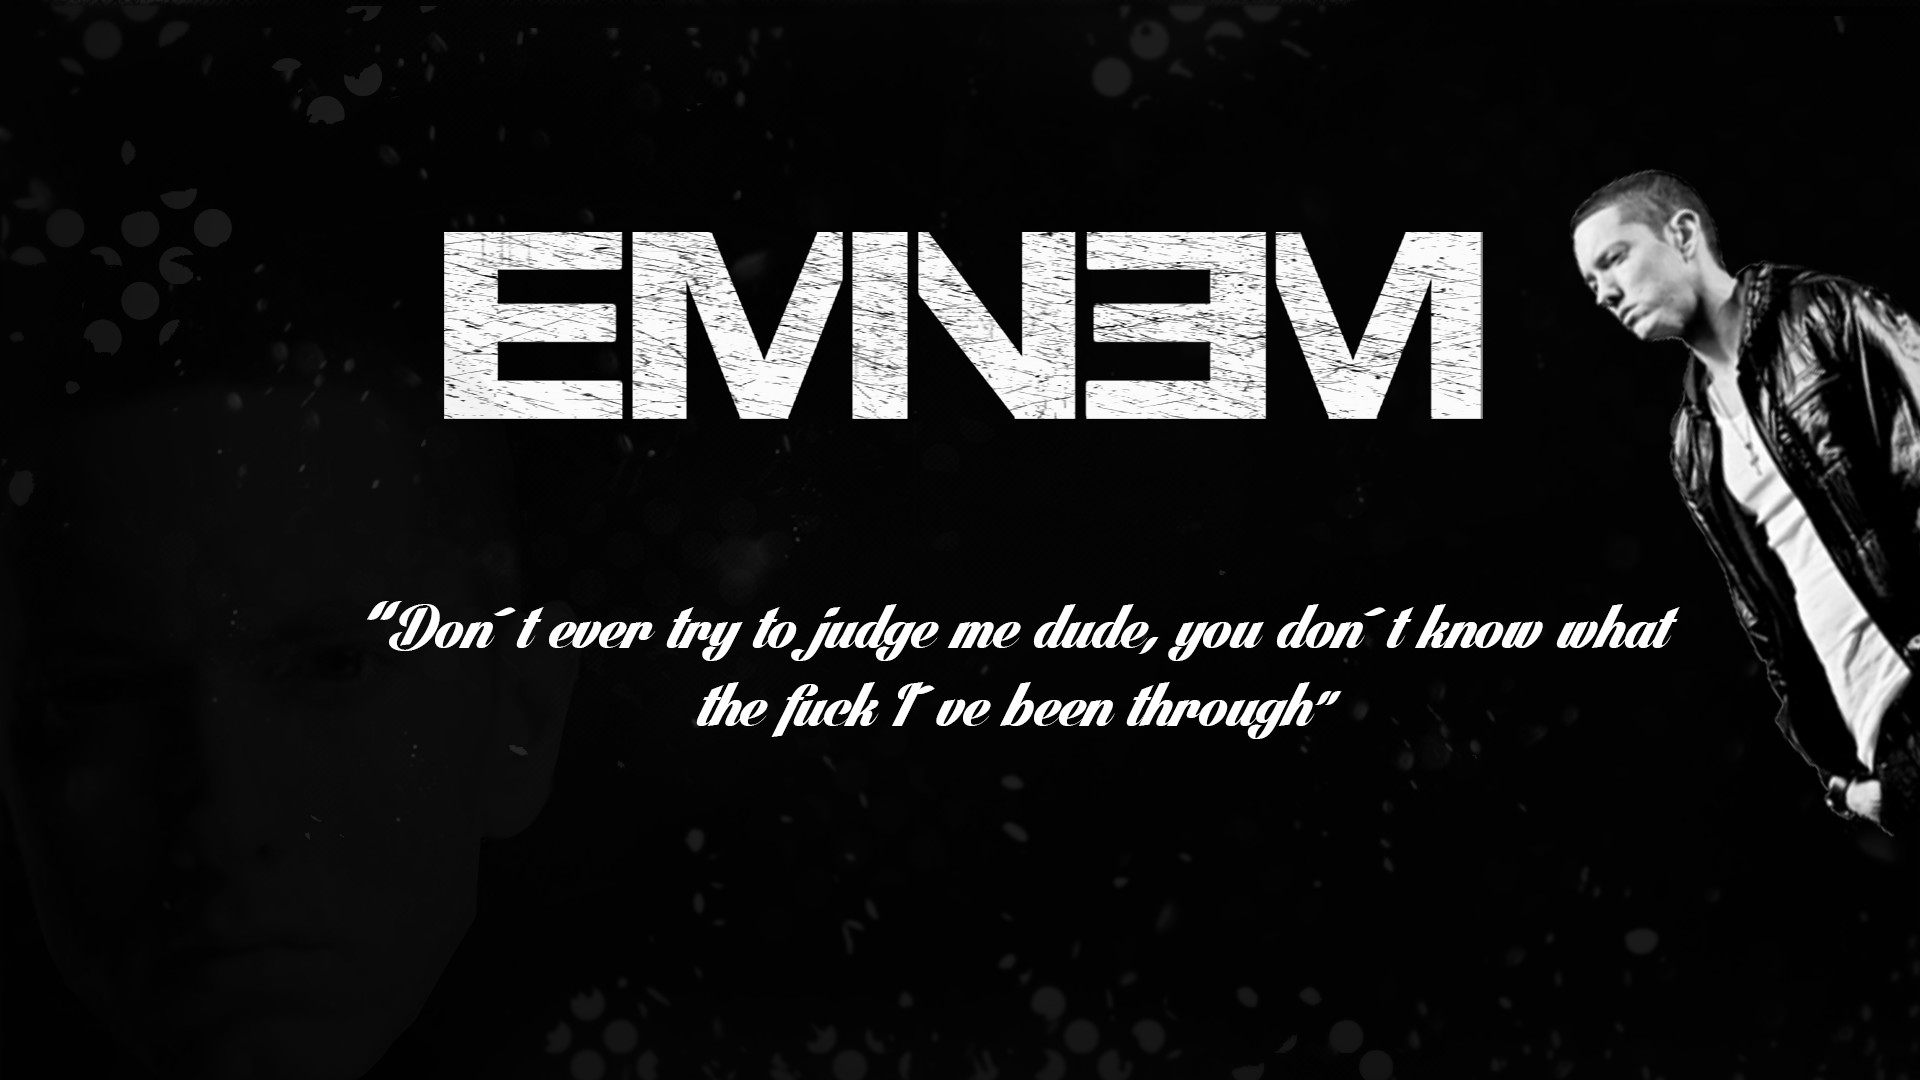 1920x1080 0 Eminem Wallpapers HD 2015 Eminem Wallpapers HD 2016